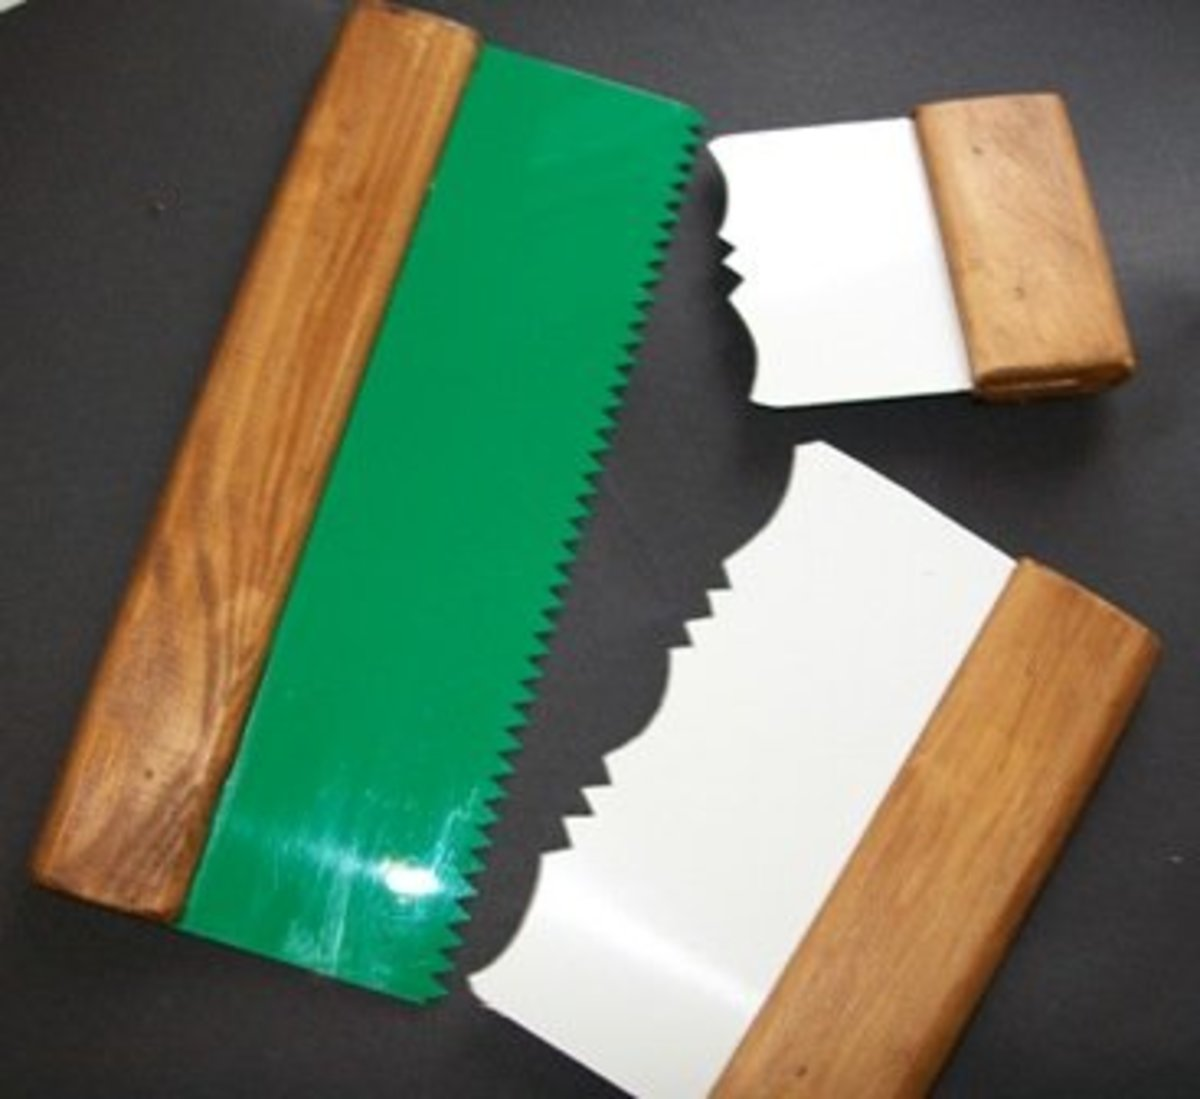 Set of 3 drywall texturing comb tools:- 1 standard 2 rose